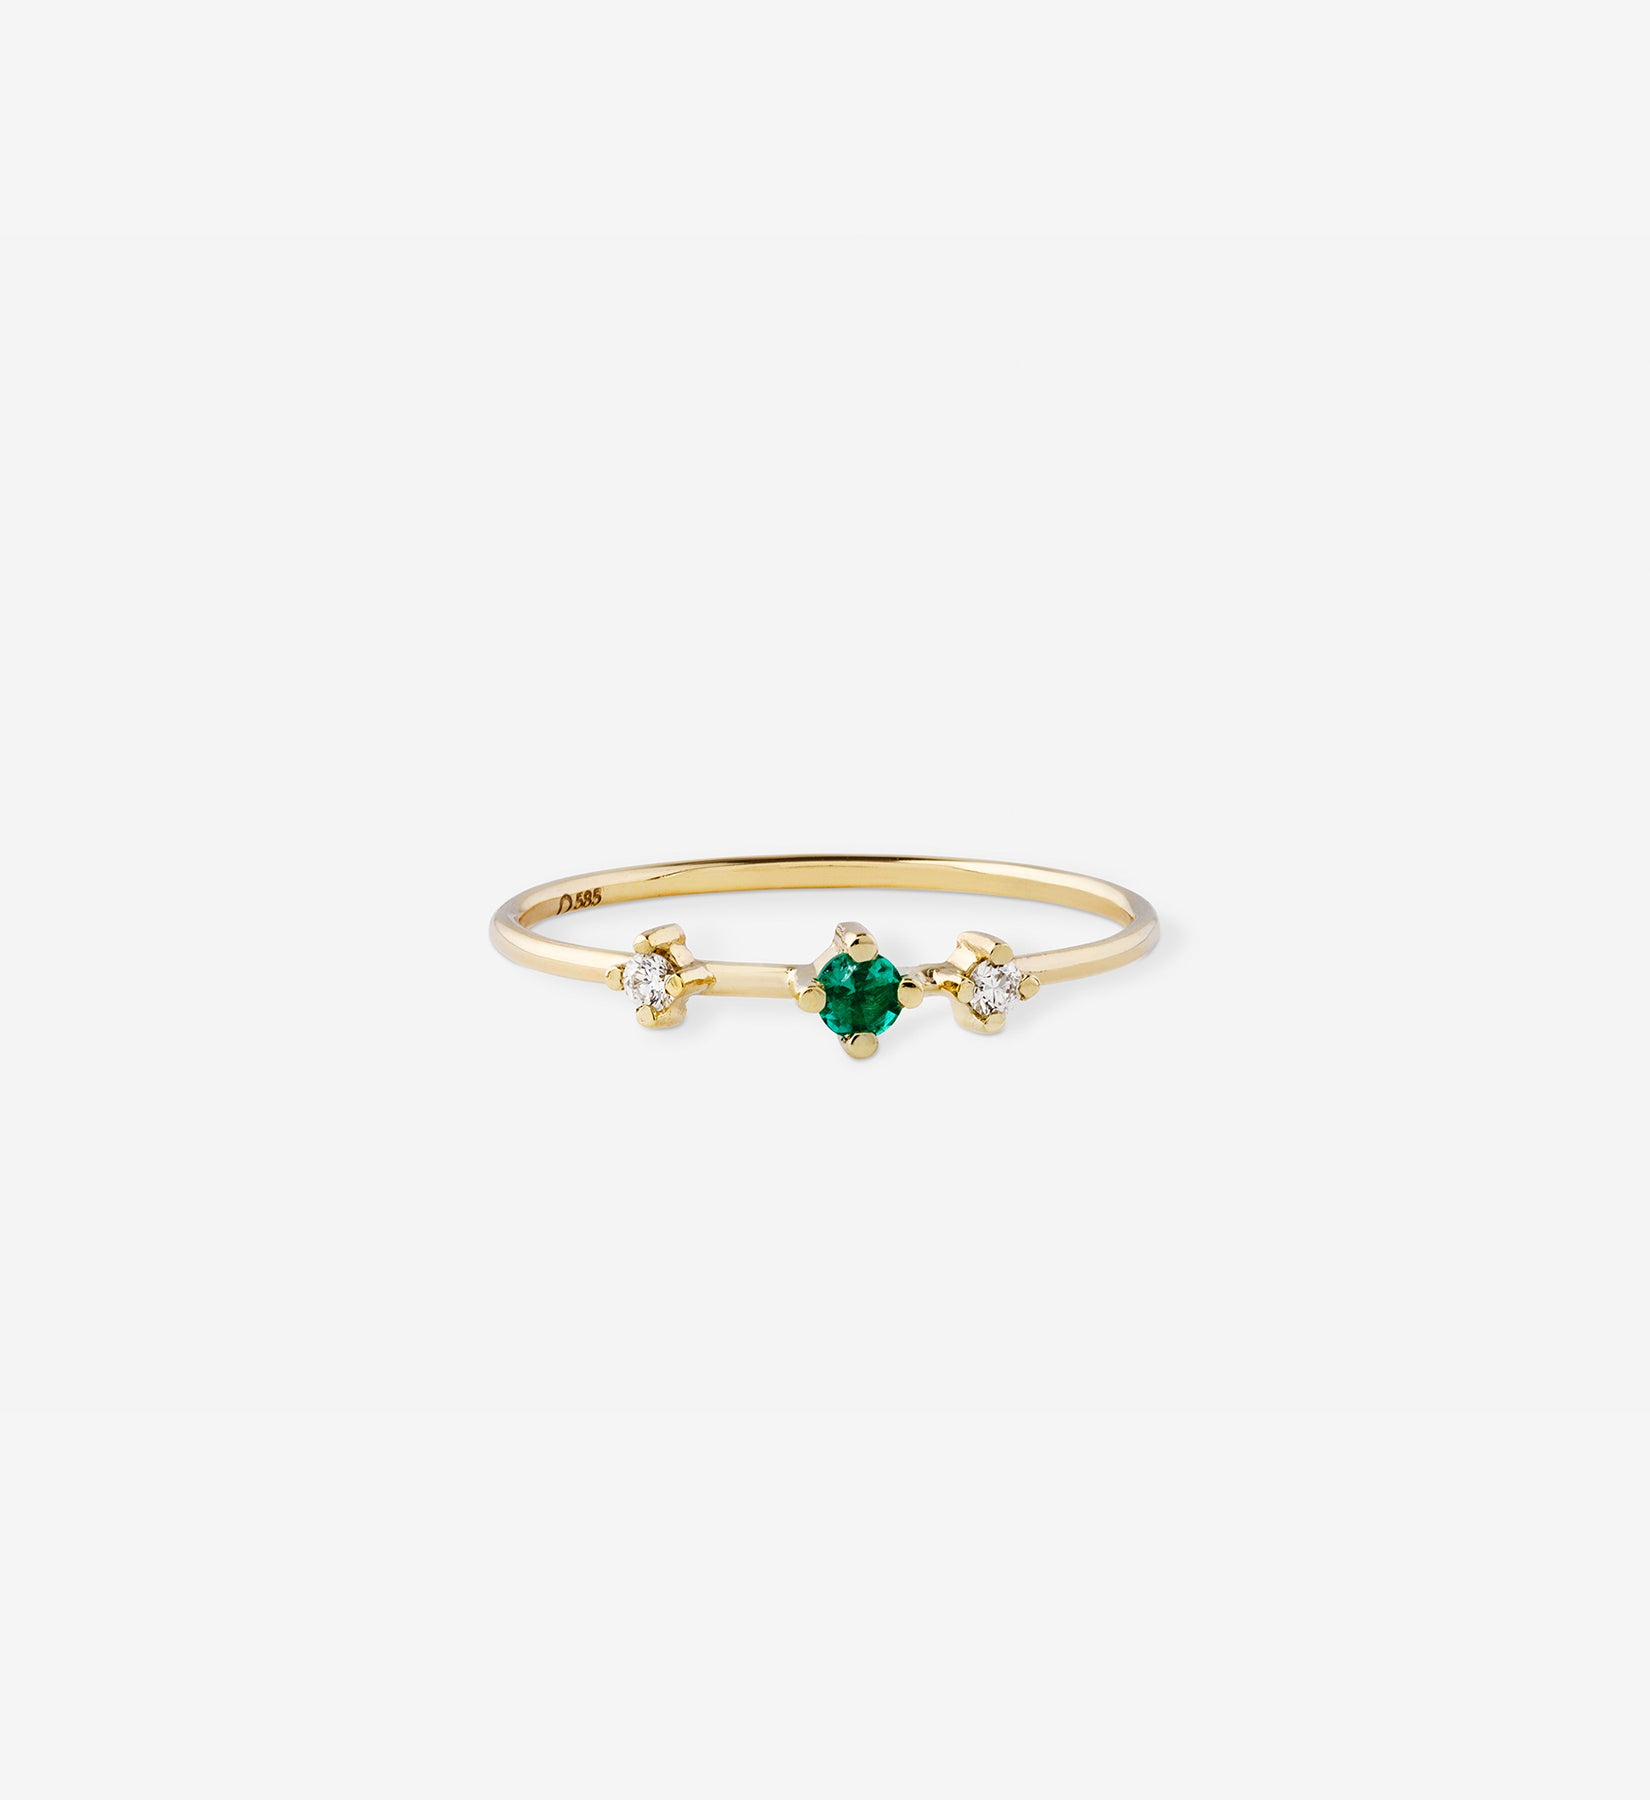 OUVERTURE, Fine jewelry, 14K gold, diamonds, golden ring, diamond ring, golden earring, diamond earring. Handcrafted jewelry. Designed in Berlin. Honestly priced. Demifine. Earparty. Stacking rings. Engagement ring, wedding ring, solitaire diamond ring, emerald ring